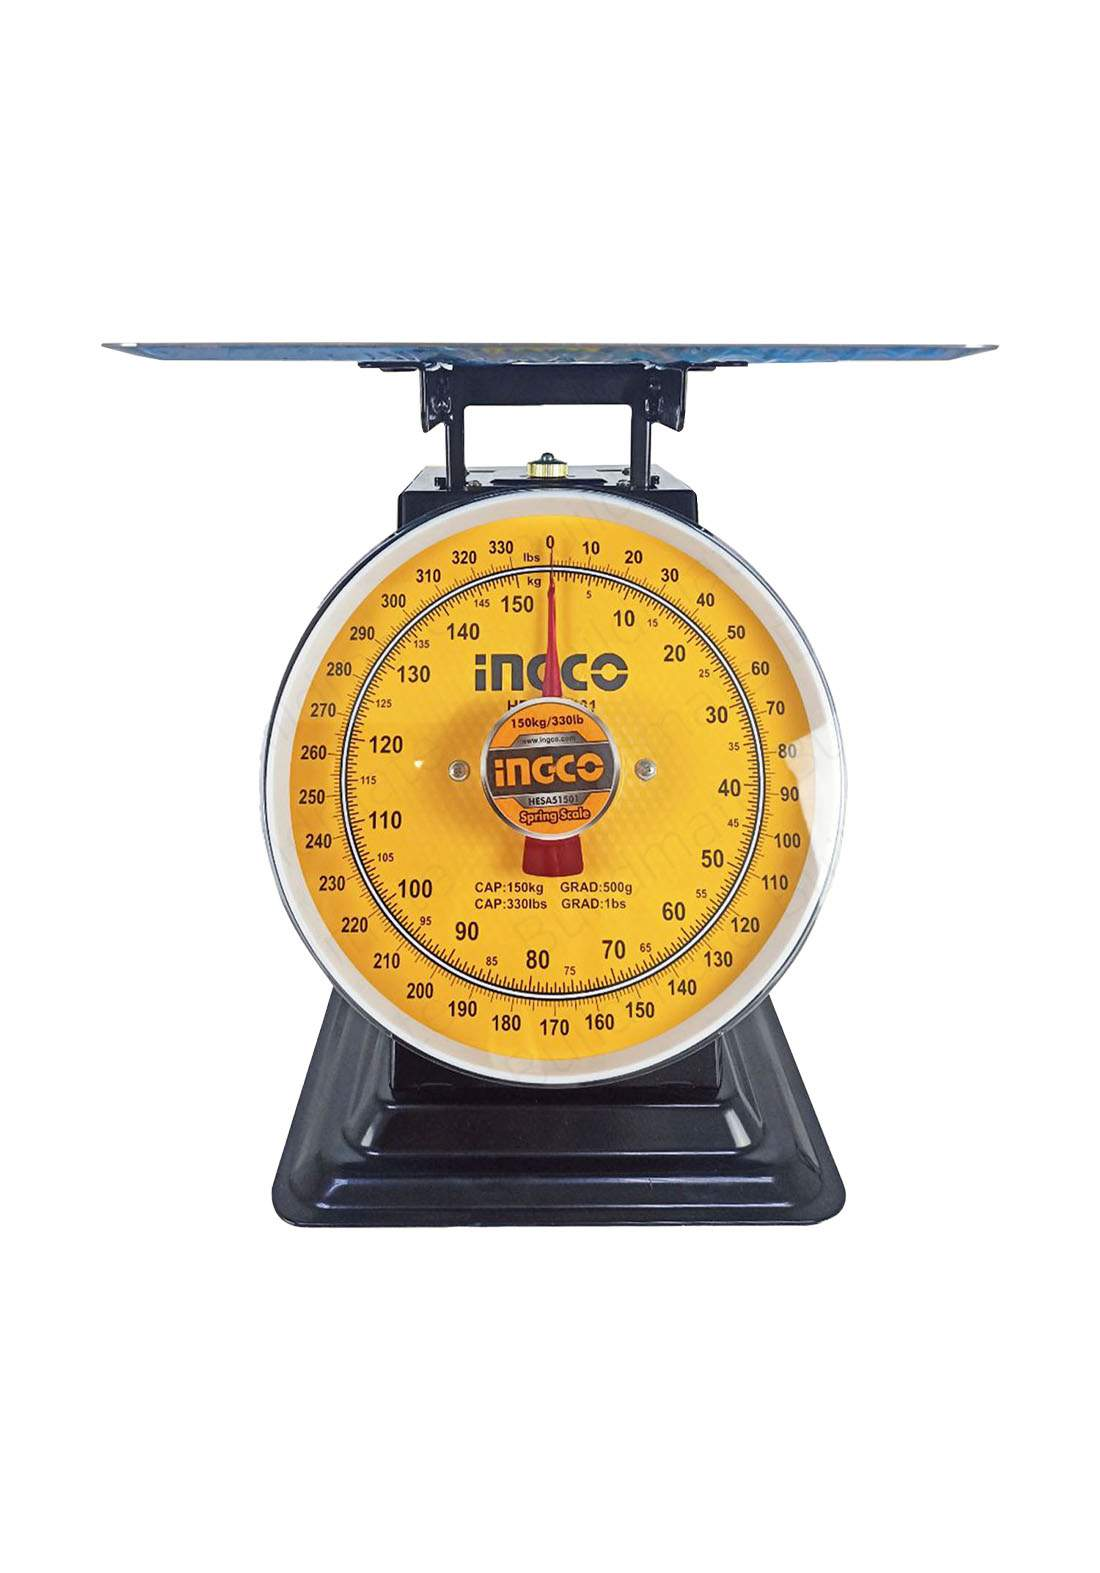 Ingco HESA51501 Spring Table Scale 150 kg ميزان طاولة